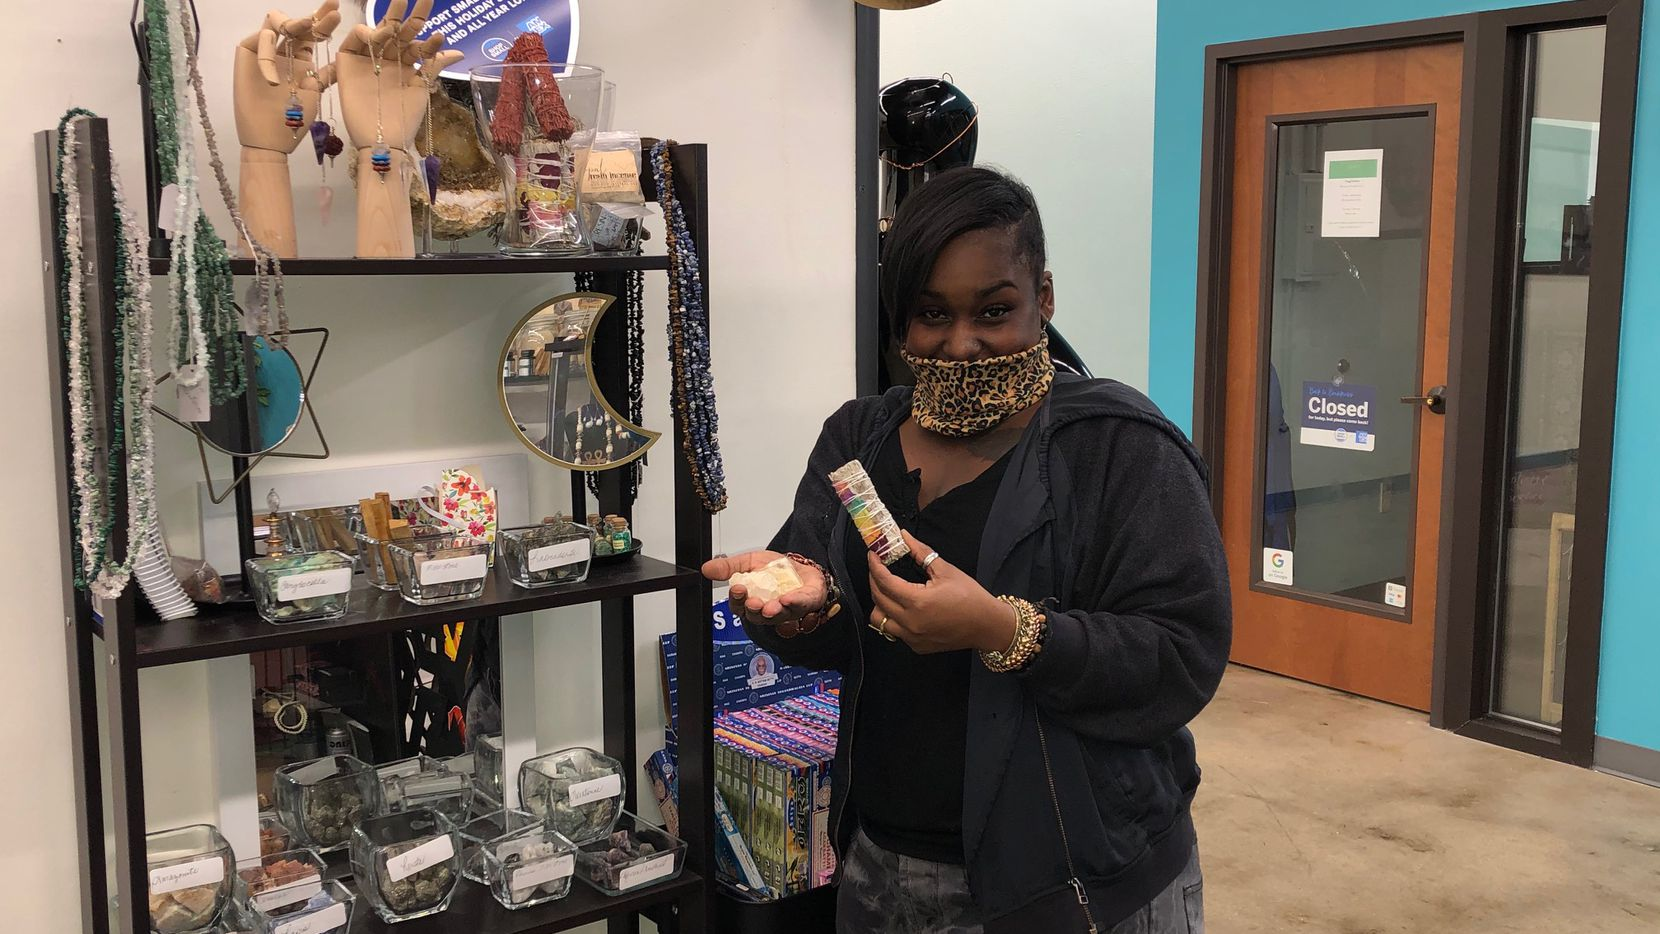 Shalan Colbert decided to move into the Grow DeSoto Marketplace because she was tired of making those in corporate America money, she said.